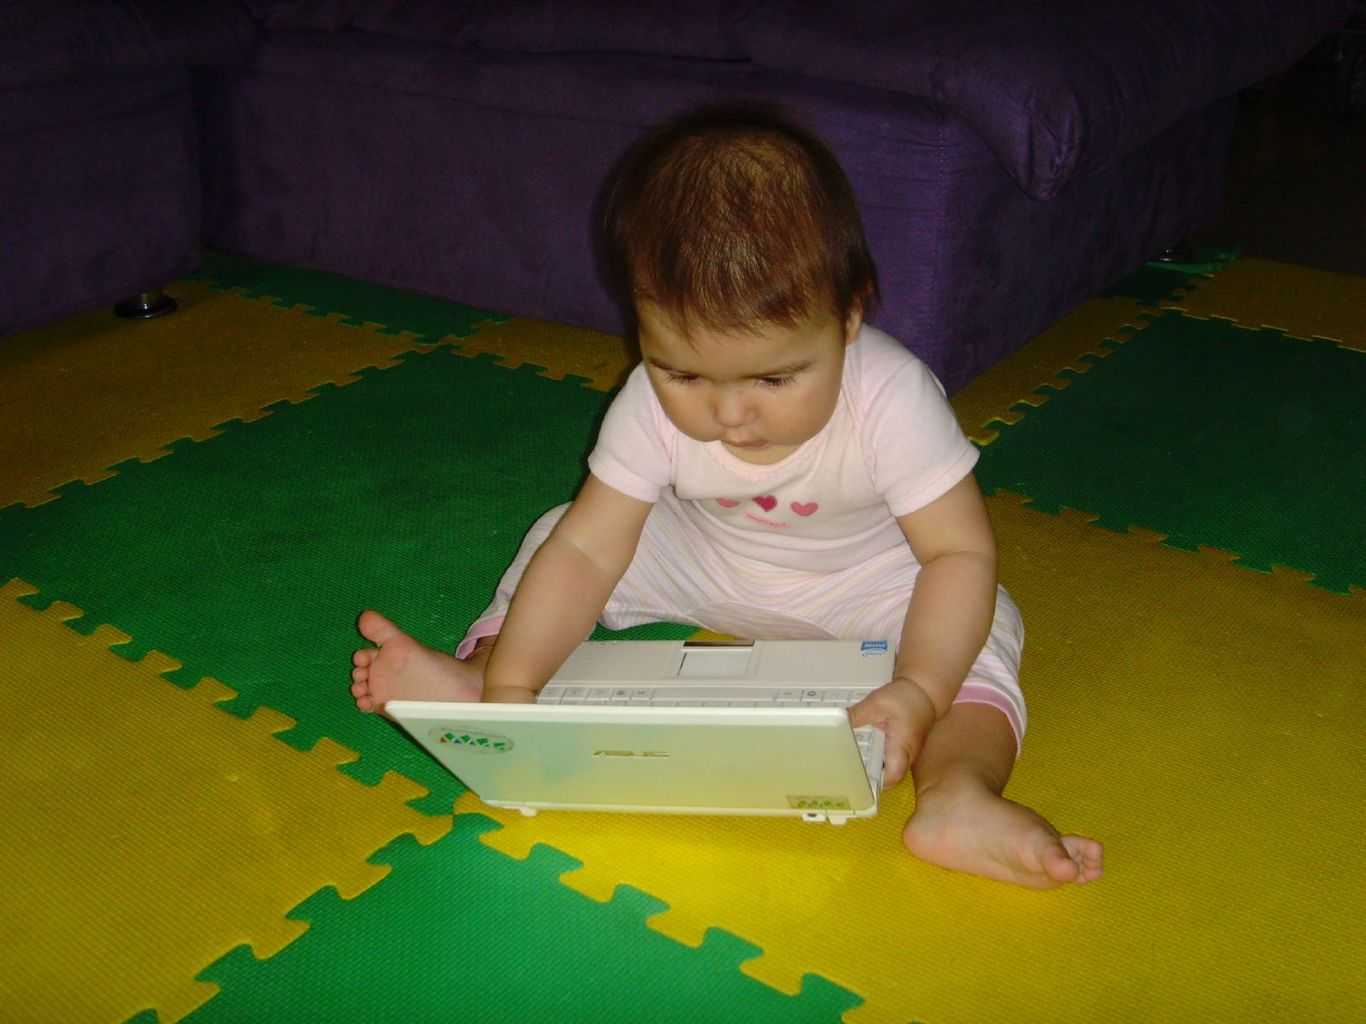 Is she a computer natural? - Image Credit: Micah Sittig , CC BY